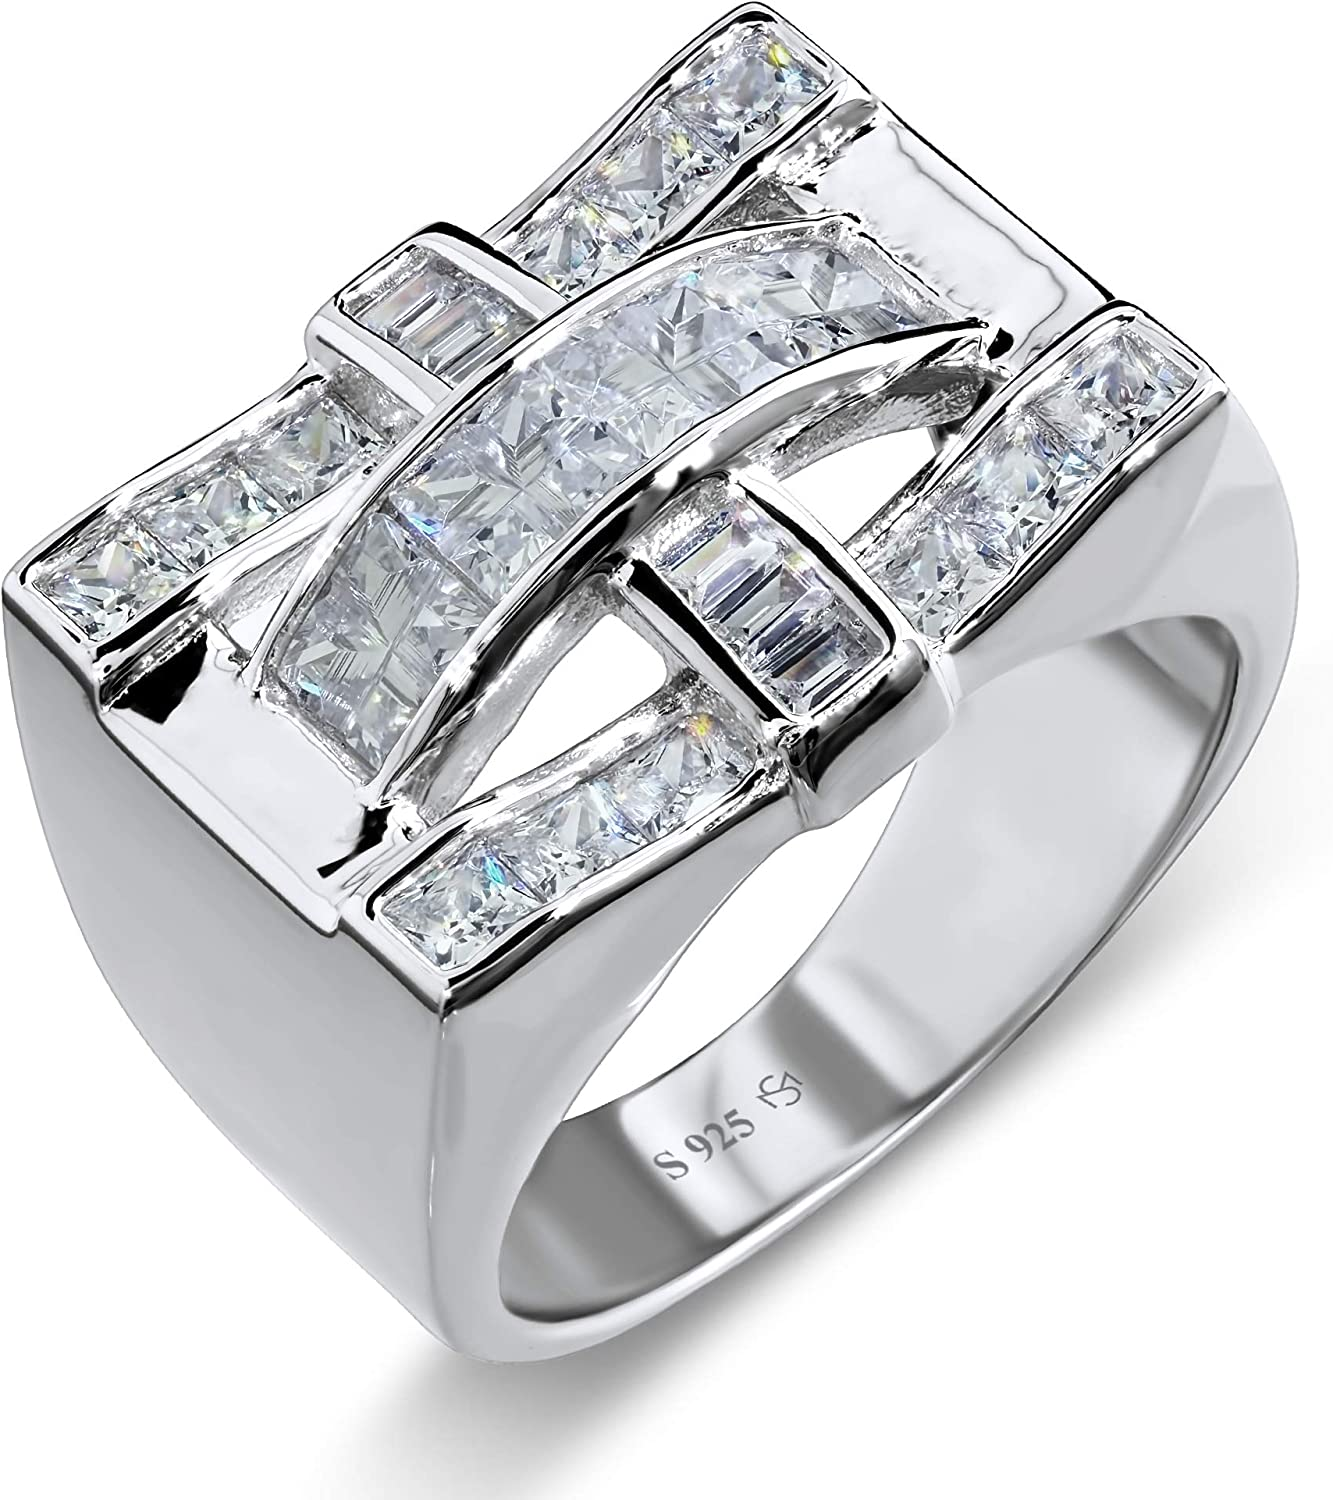 Sterling Manufacturers [2-5 Days Delivery] Men's .925 Sterling Silver Criss Cross Ring with Fancy Cubic Zirconia (CZ) Channel and Invisible Set Stones, Platinum Plated Eye Catching Design.